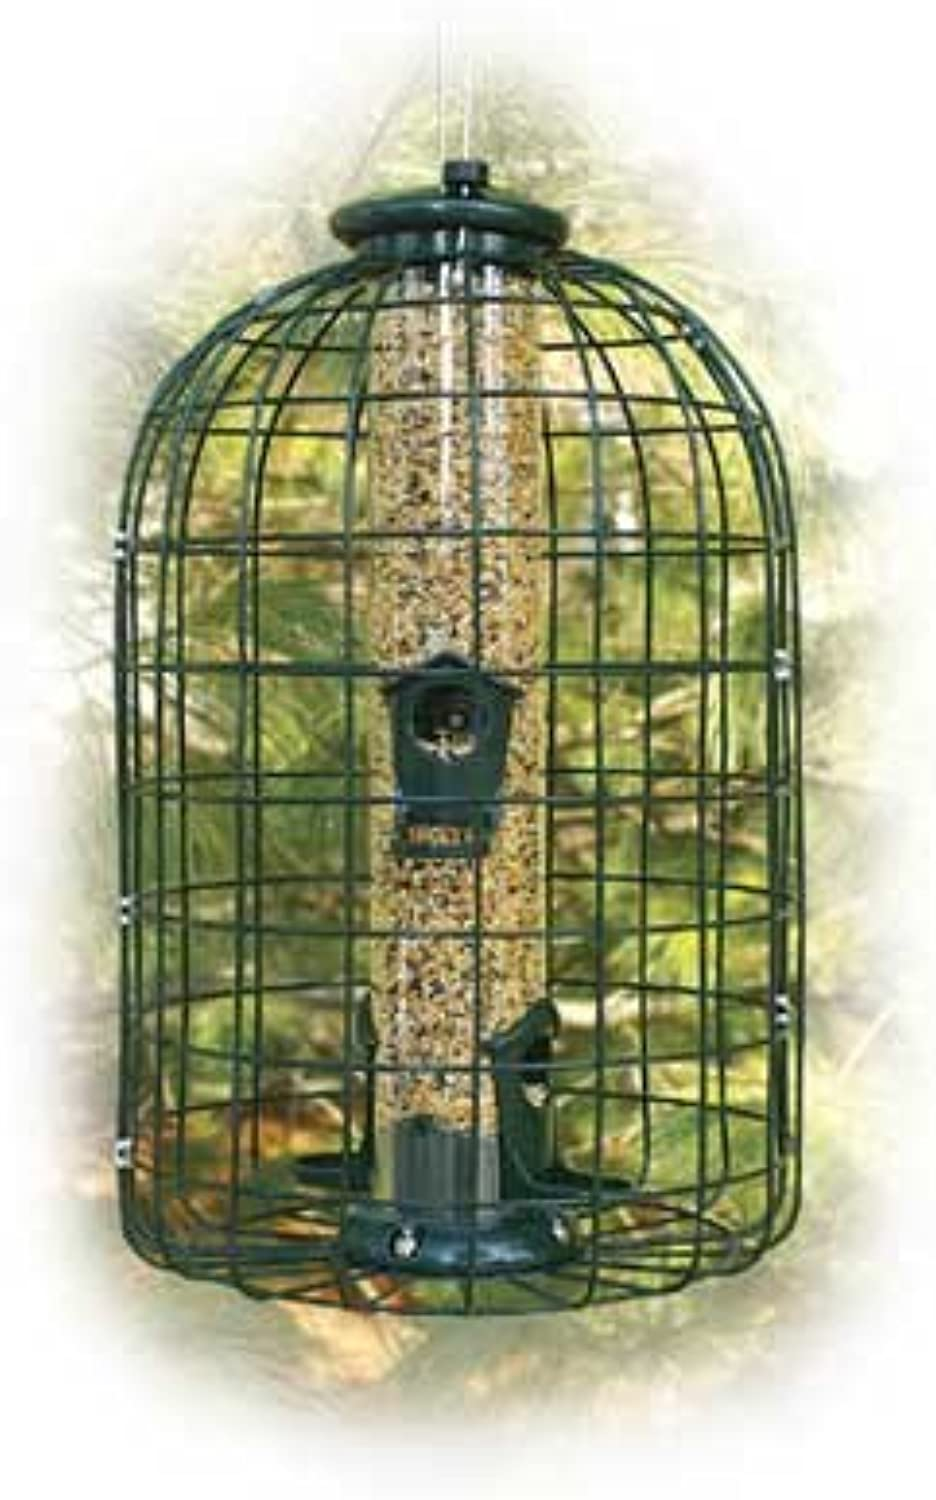 Caged Seed Tube Bird Feeder 2 lbs Capacity, Squirrel Resistant